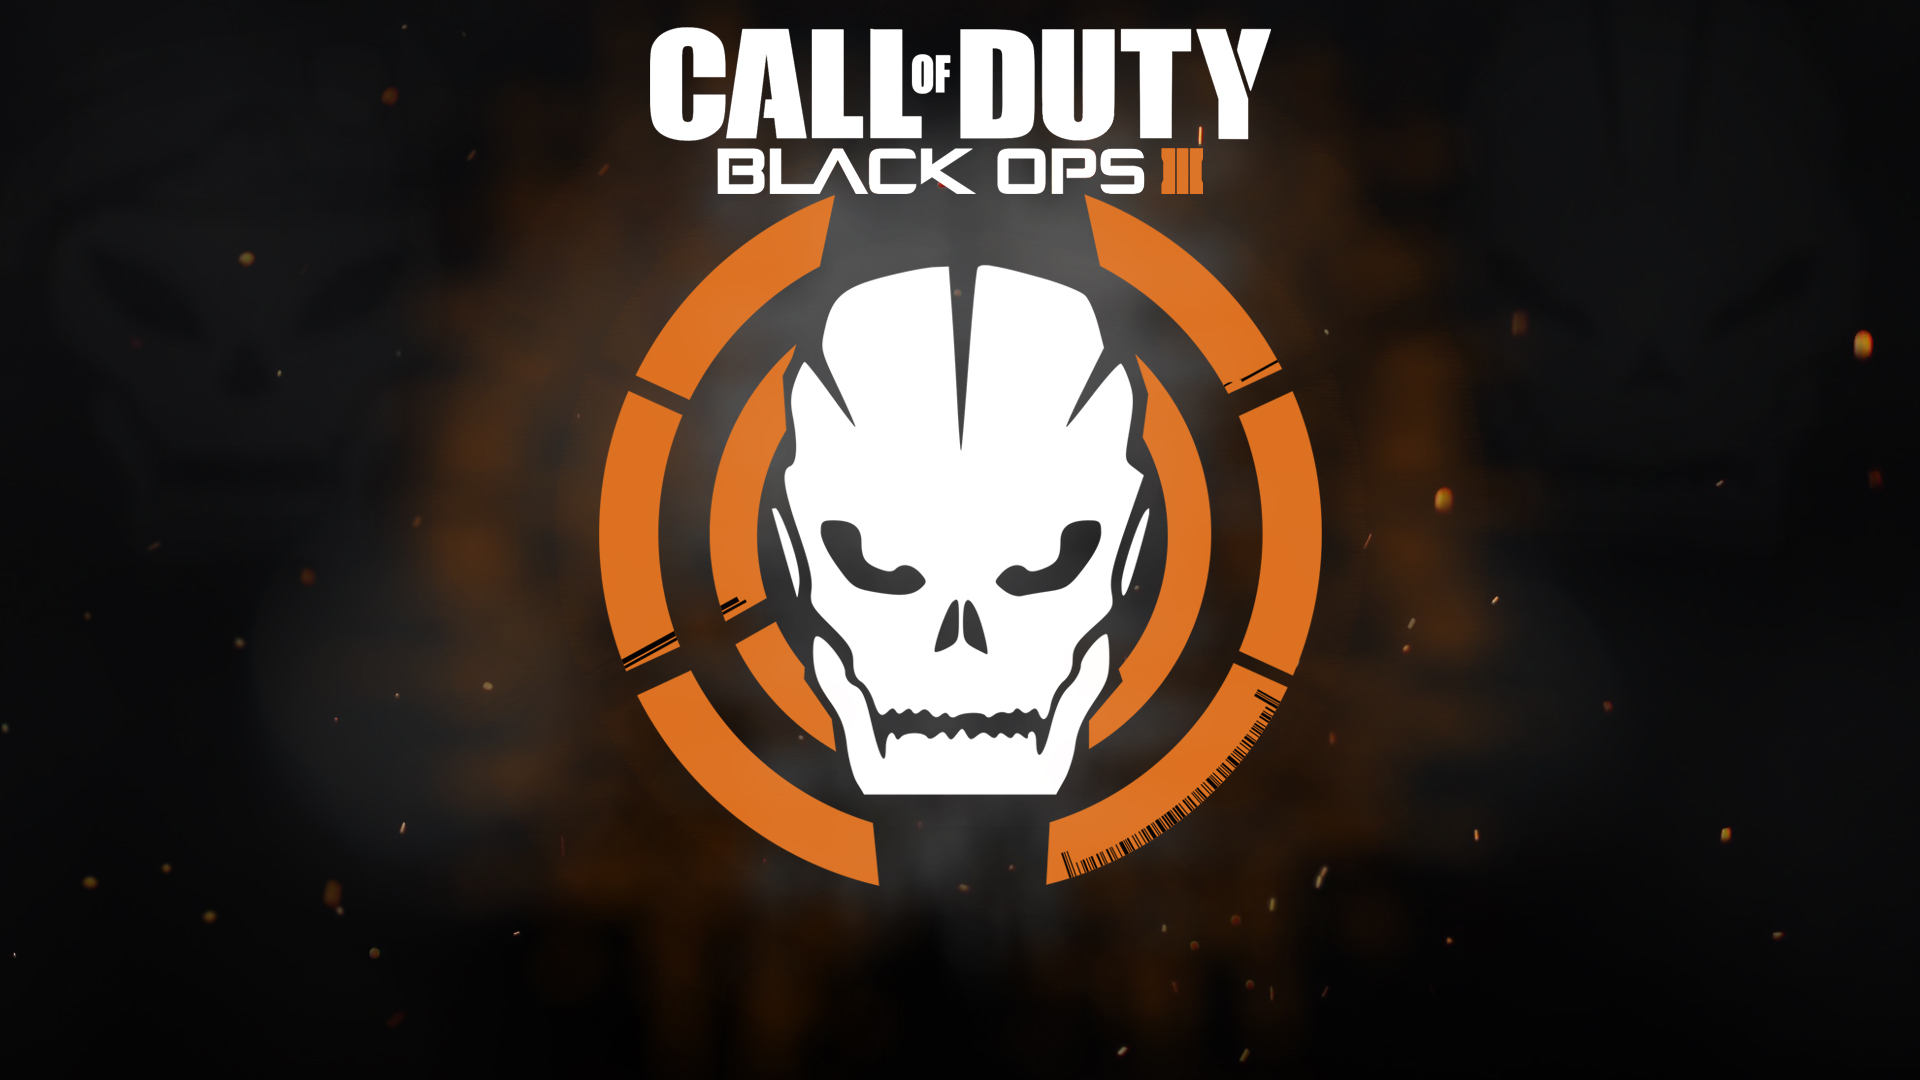 Call Of Duty Black Ops 3 Wallpaper 02 By Toby Affenbude On Deviantart